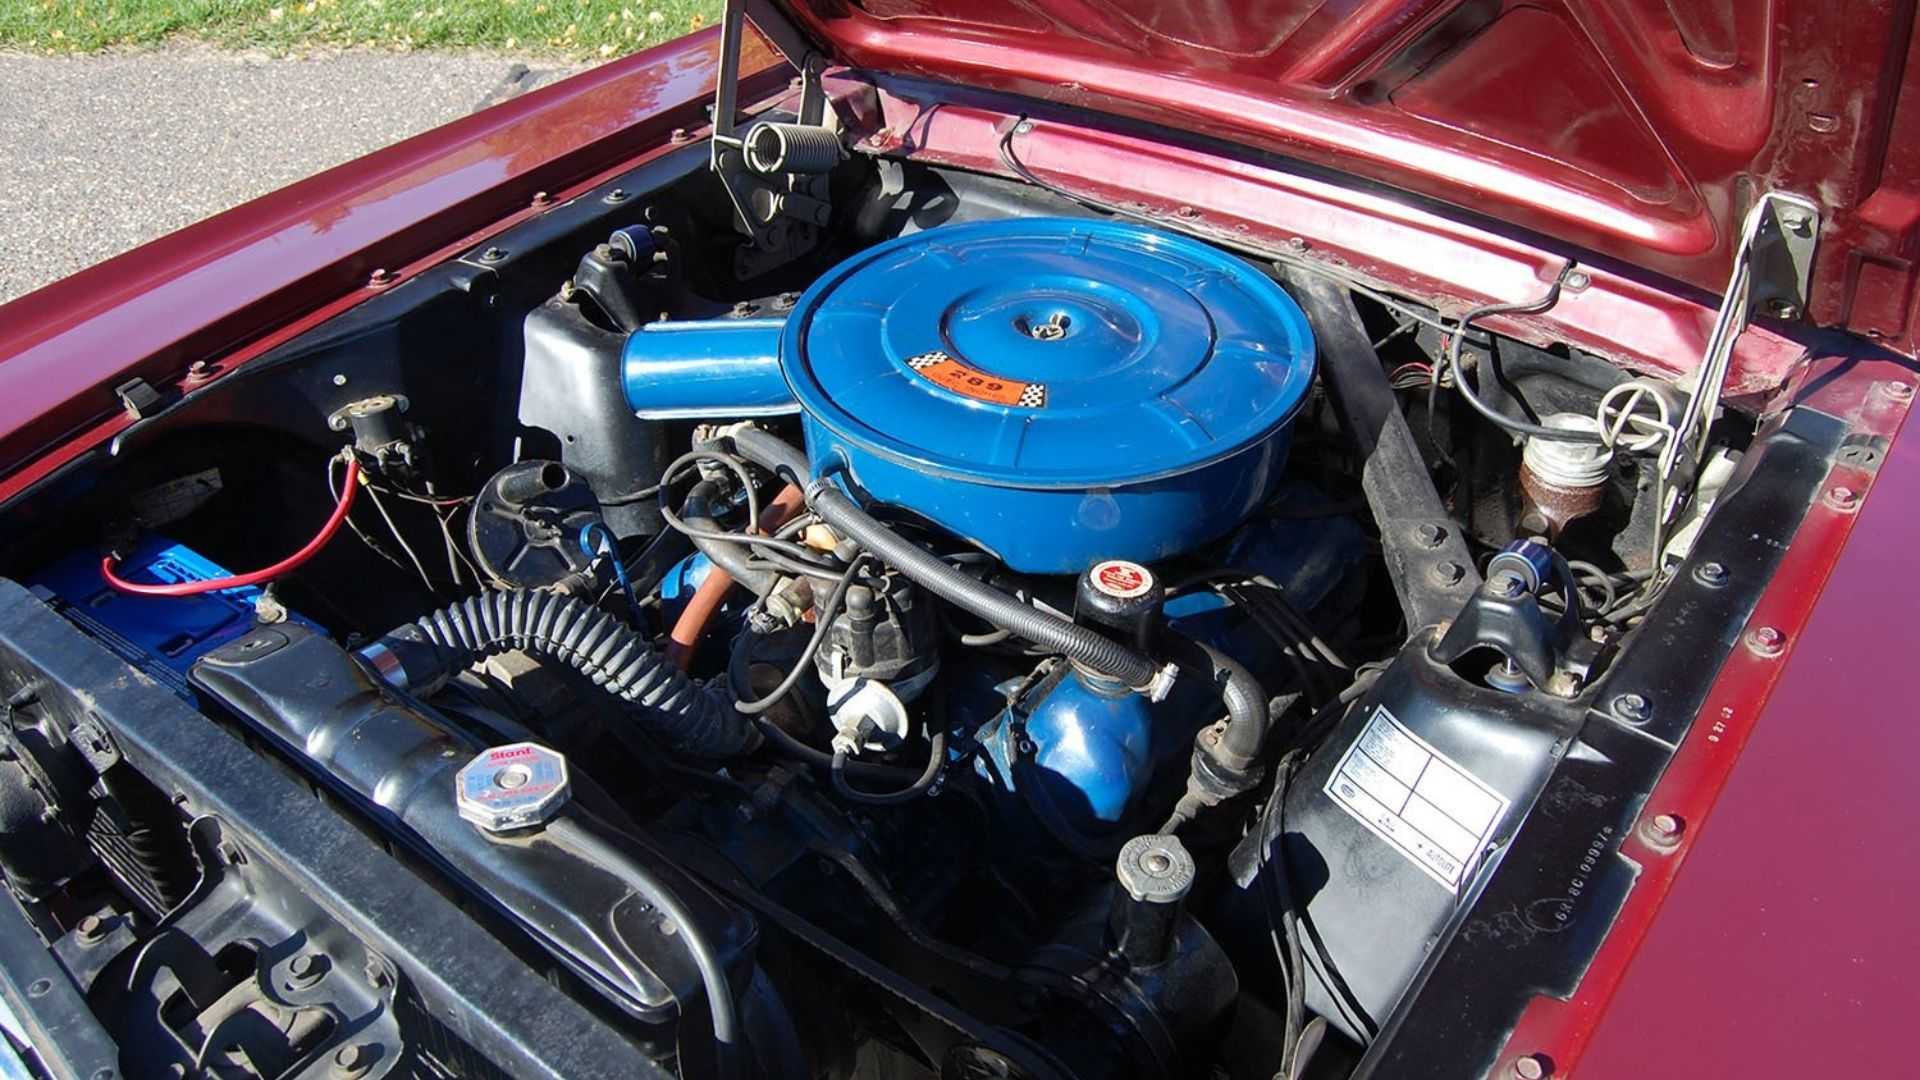 Grab This Survivor 1966 Ford Mustang Convertible